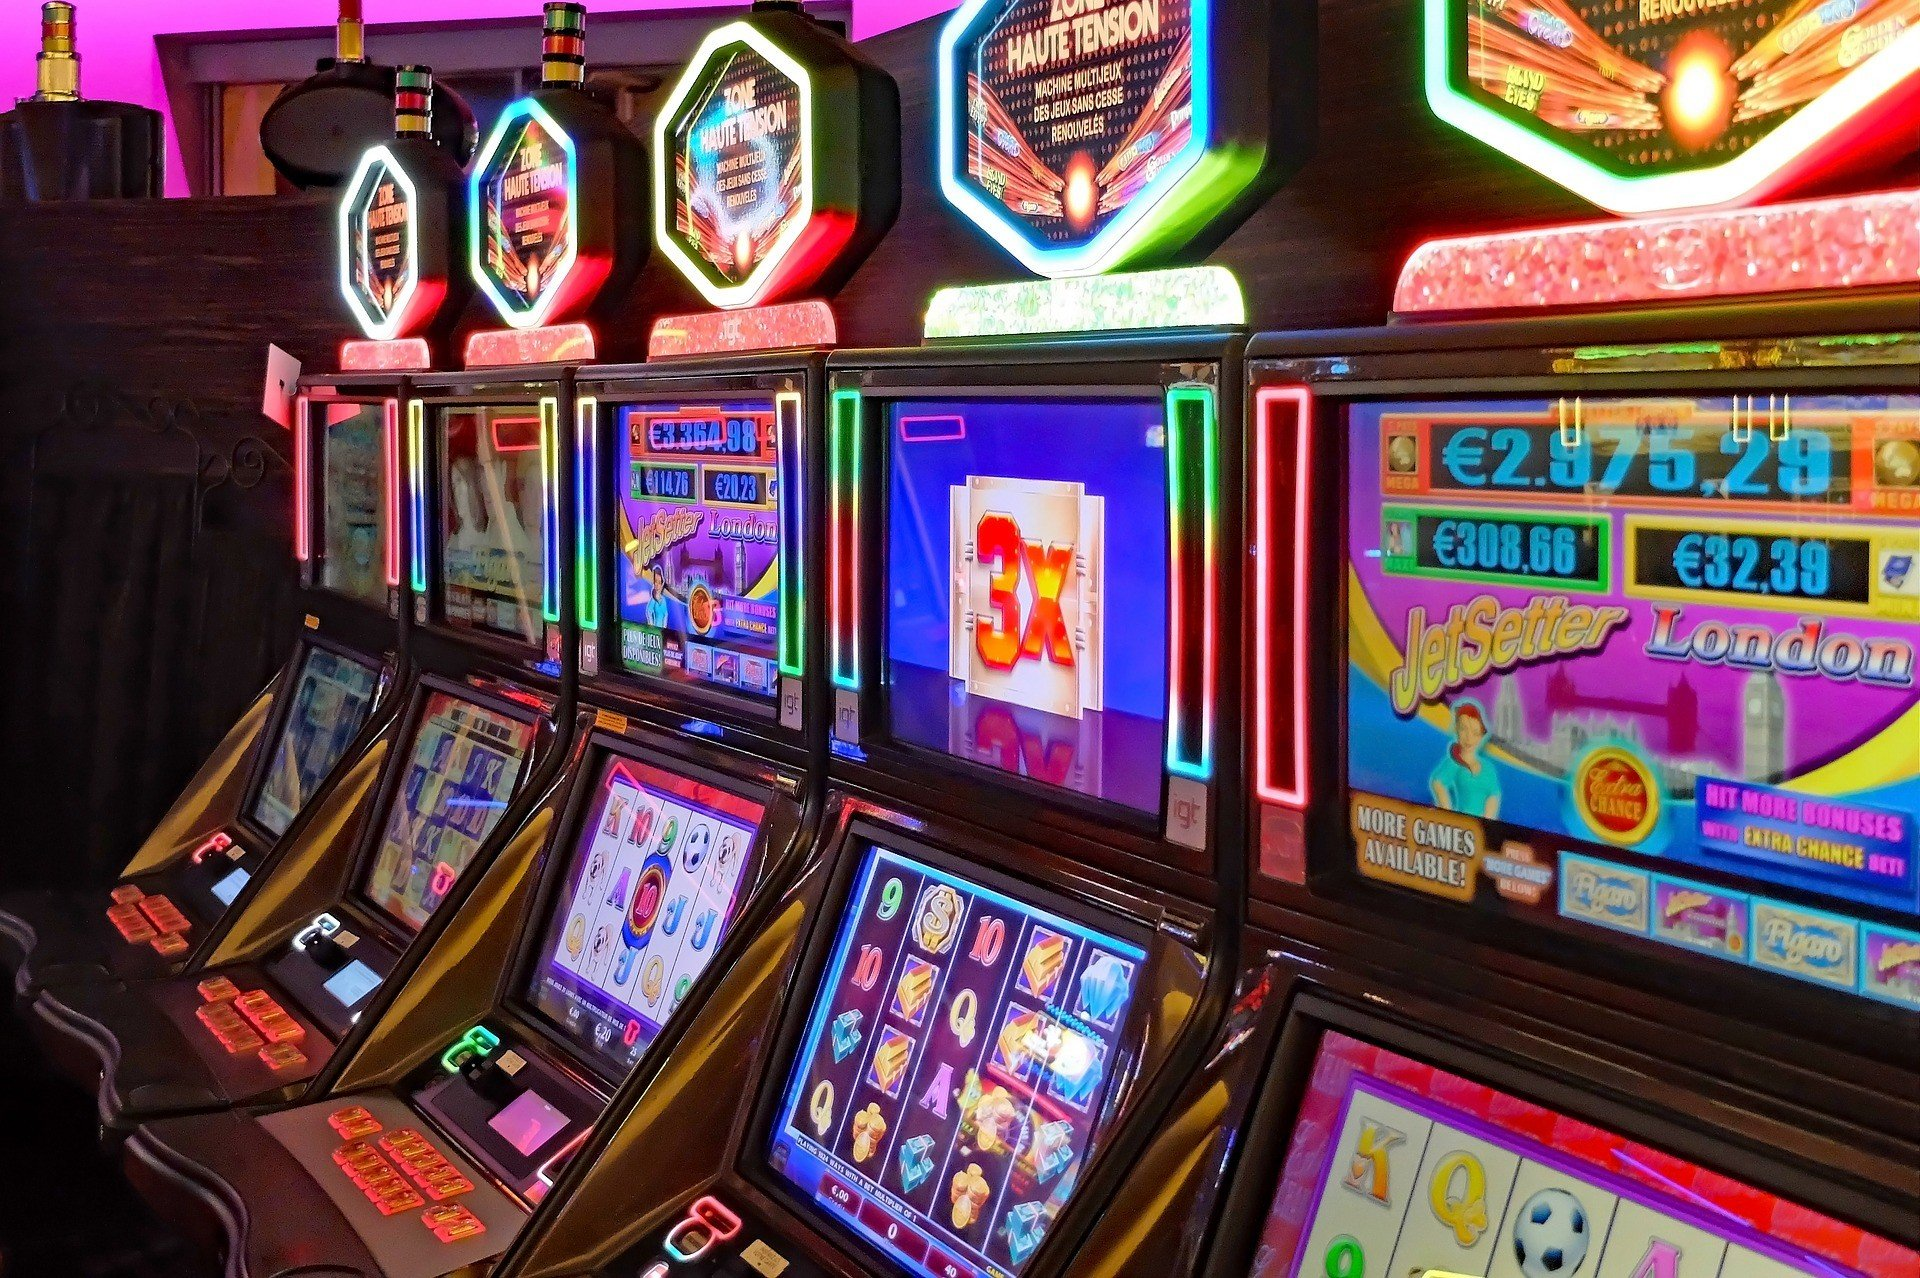 Slot machines in a casino.